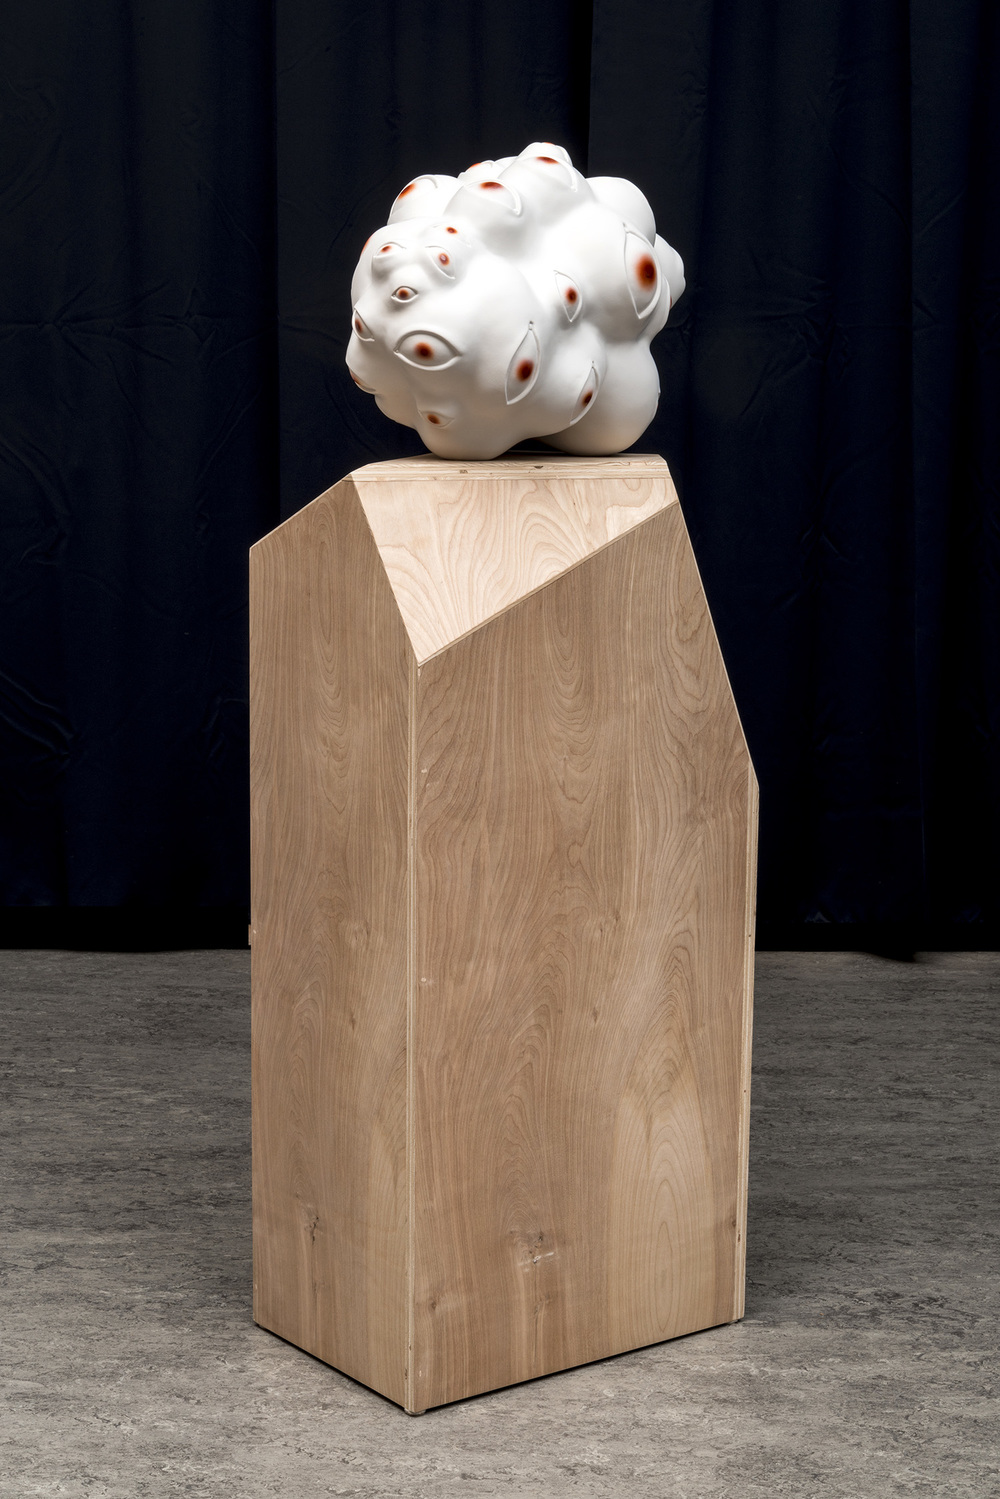 "Tanya Batura  Untitled (eye blob)  2014 Clay, acrylic 14 x 12 x 18 inches 54 x 13 x 19 inches with pedestal Courtesy of 101/Exhibit Photography: Alan Shaffer          Normal   0           false   false   false     EN-US   X-NONE   X-NONE                                                                                                                                                                                                                                                                                                                                                                                 /* Style Definitions */  table.MsoNormalTable 	{mso-style-name:""Table Normal""; 	mso-tstyle-rowband-size:0; 	mso-tstyle-colband-size:0; 	mso-style-noshow:yes; 	mso-style-priority:99; 	mso-style-qformat:yes; 	mso-style-parent:""""; 	mso-padding-alt:0in 5.4pt 0in 5.4pt; 	mso-para-margin-top:0in; 	mso-para-margin-right:0in; 	mso-para-margin-bottom:10.0pt; 	mso-para-margin-left:0in; 	line-height:115%; 	mso-pagination:widow-orphan; 	font-size:10.0pt; 	font-family:""Cambria"",""serif""; 	mso-fareast-font-family:""MS Mincho""; 	mso-bidi-font-family:""Times New Roman"";}"